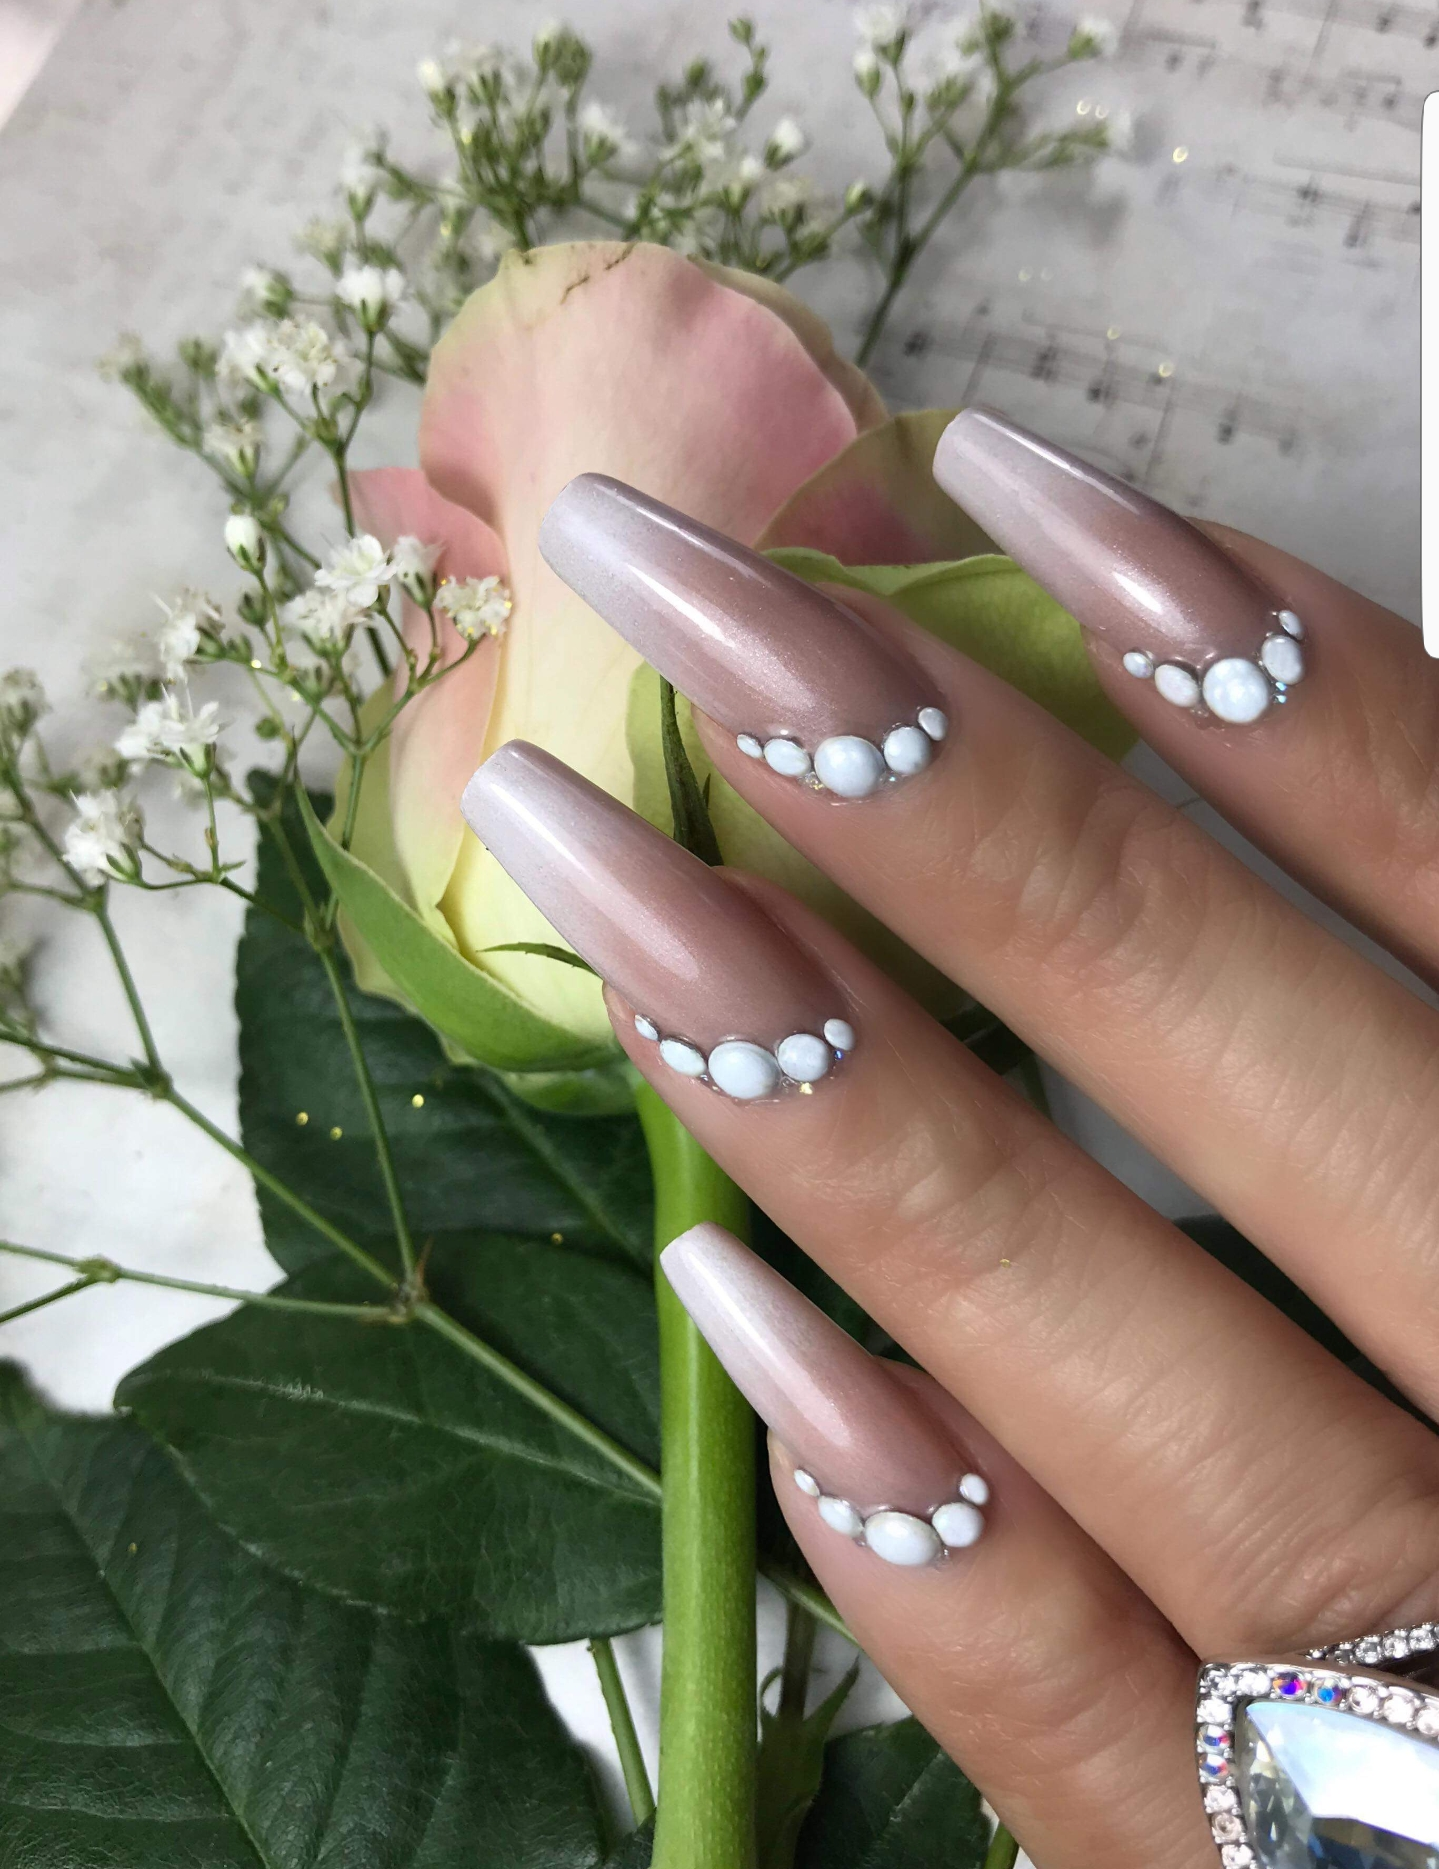 Workshop Salon Nail Shapes Door Tracey Lee Op 4 April 2018 Webshop